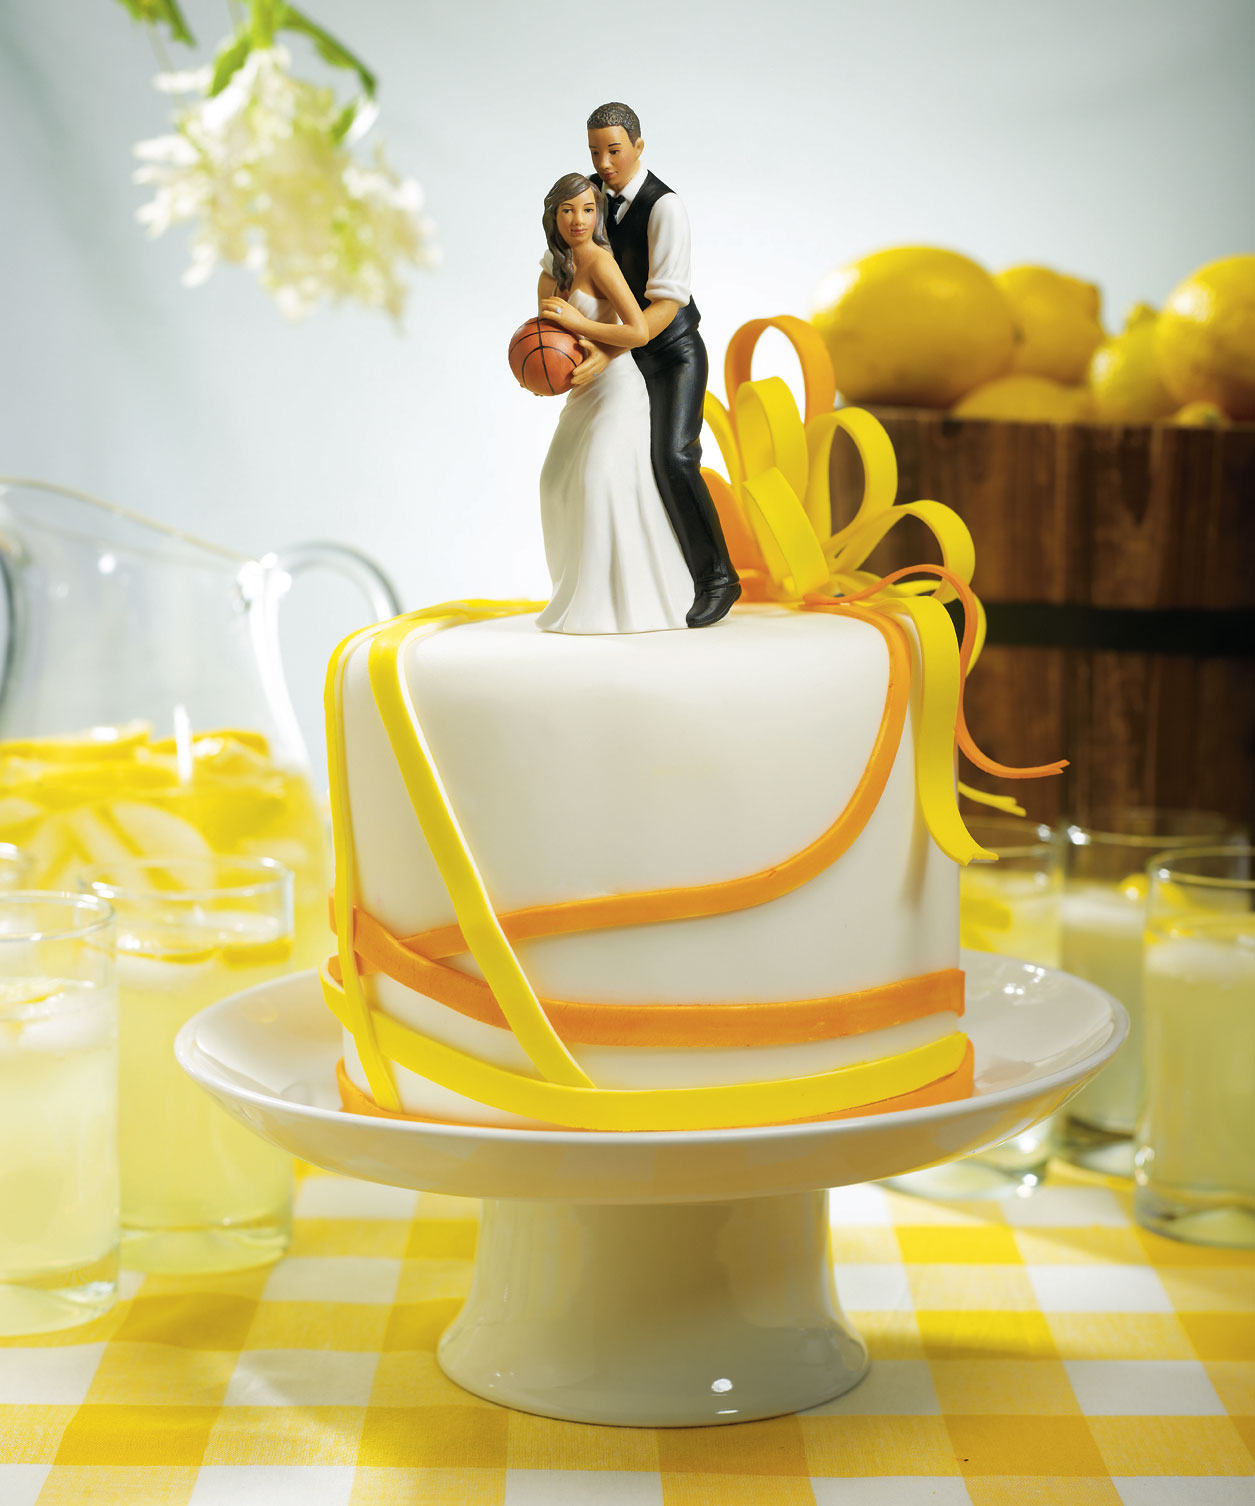 Basketball Dream Team Couple Sports Wedding Cake Topper - Couture Bridal